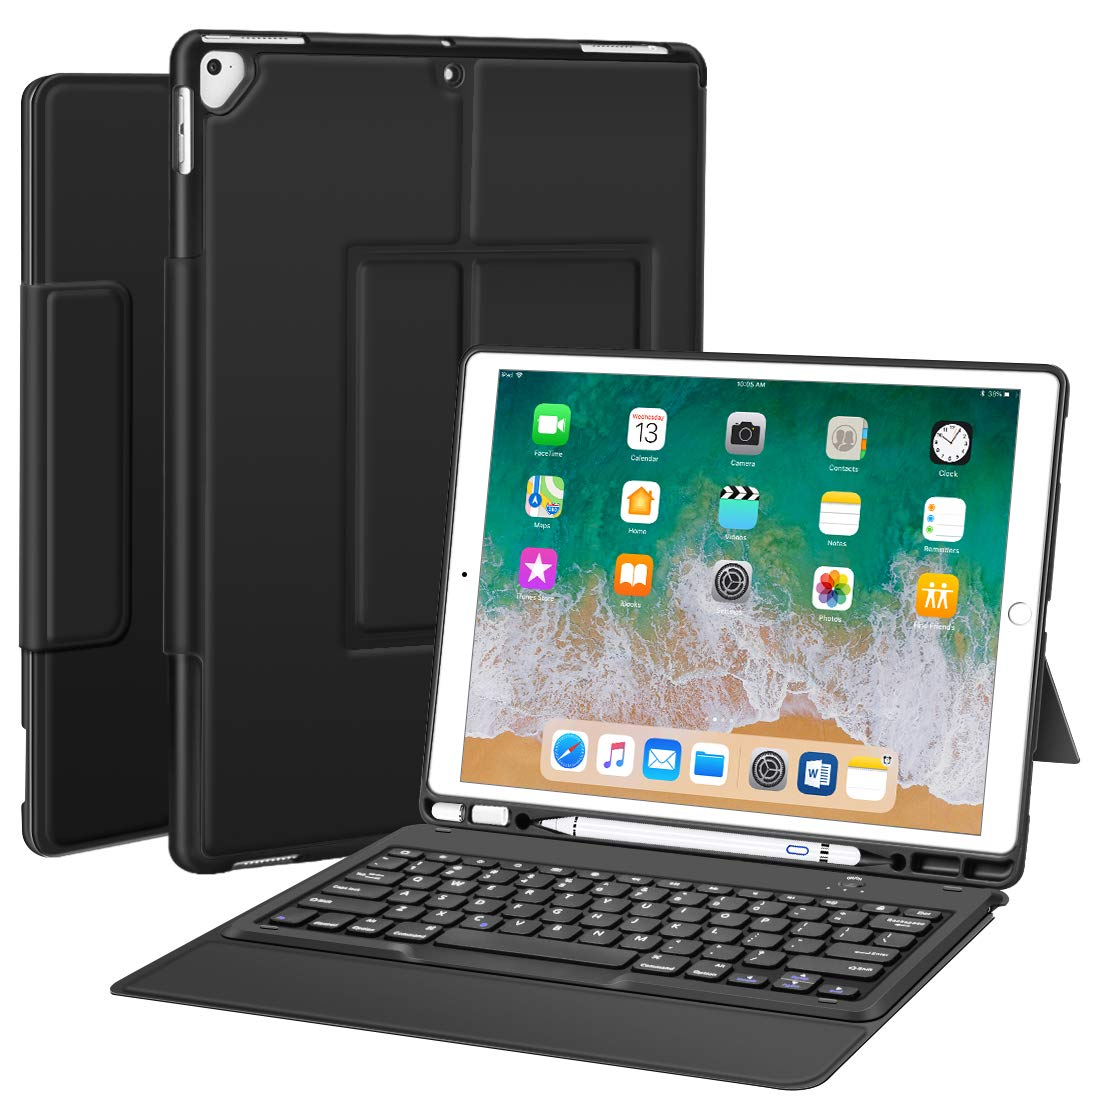 Sounwill ipad pro 12.9 Case with Keyboard Compatible for ipad pro 12.9'' 2015/2017, Ultra-Thin PU Leather Silicon Rugged Shock Keyboard Stand Case with Pencil Holder (Not Fit for 2018 New ipad)-Black